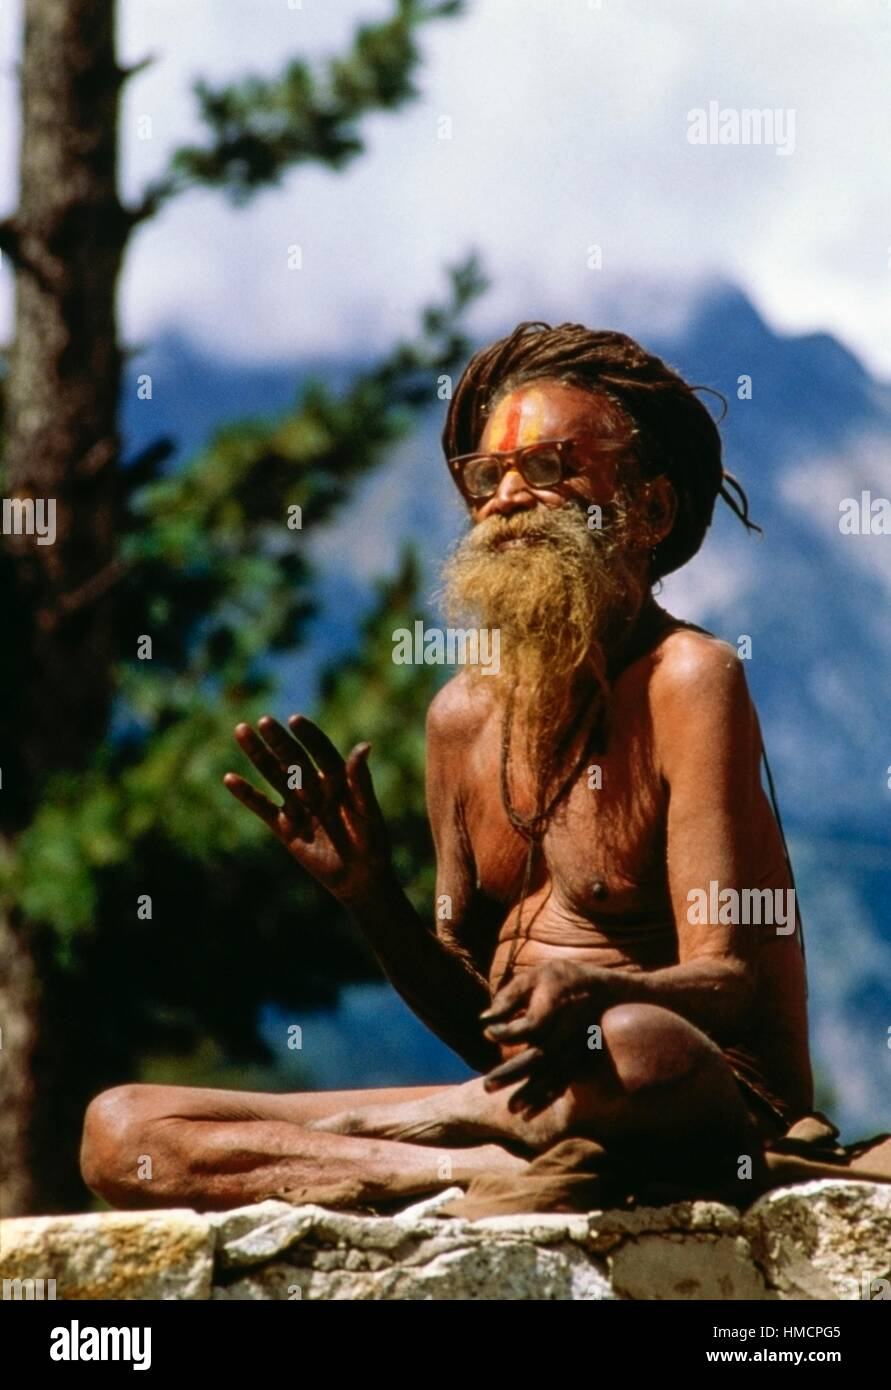 Sadhu, Hindu ascetic, with jata, typical hairstyle, Rajasthan, India. - Stock Image